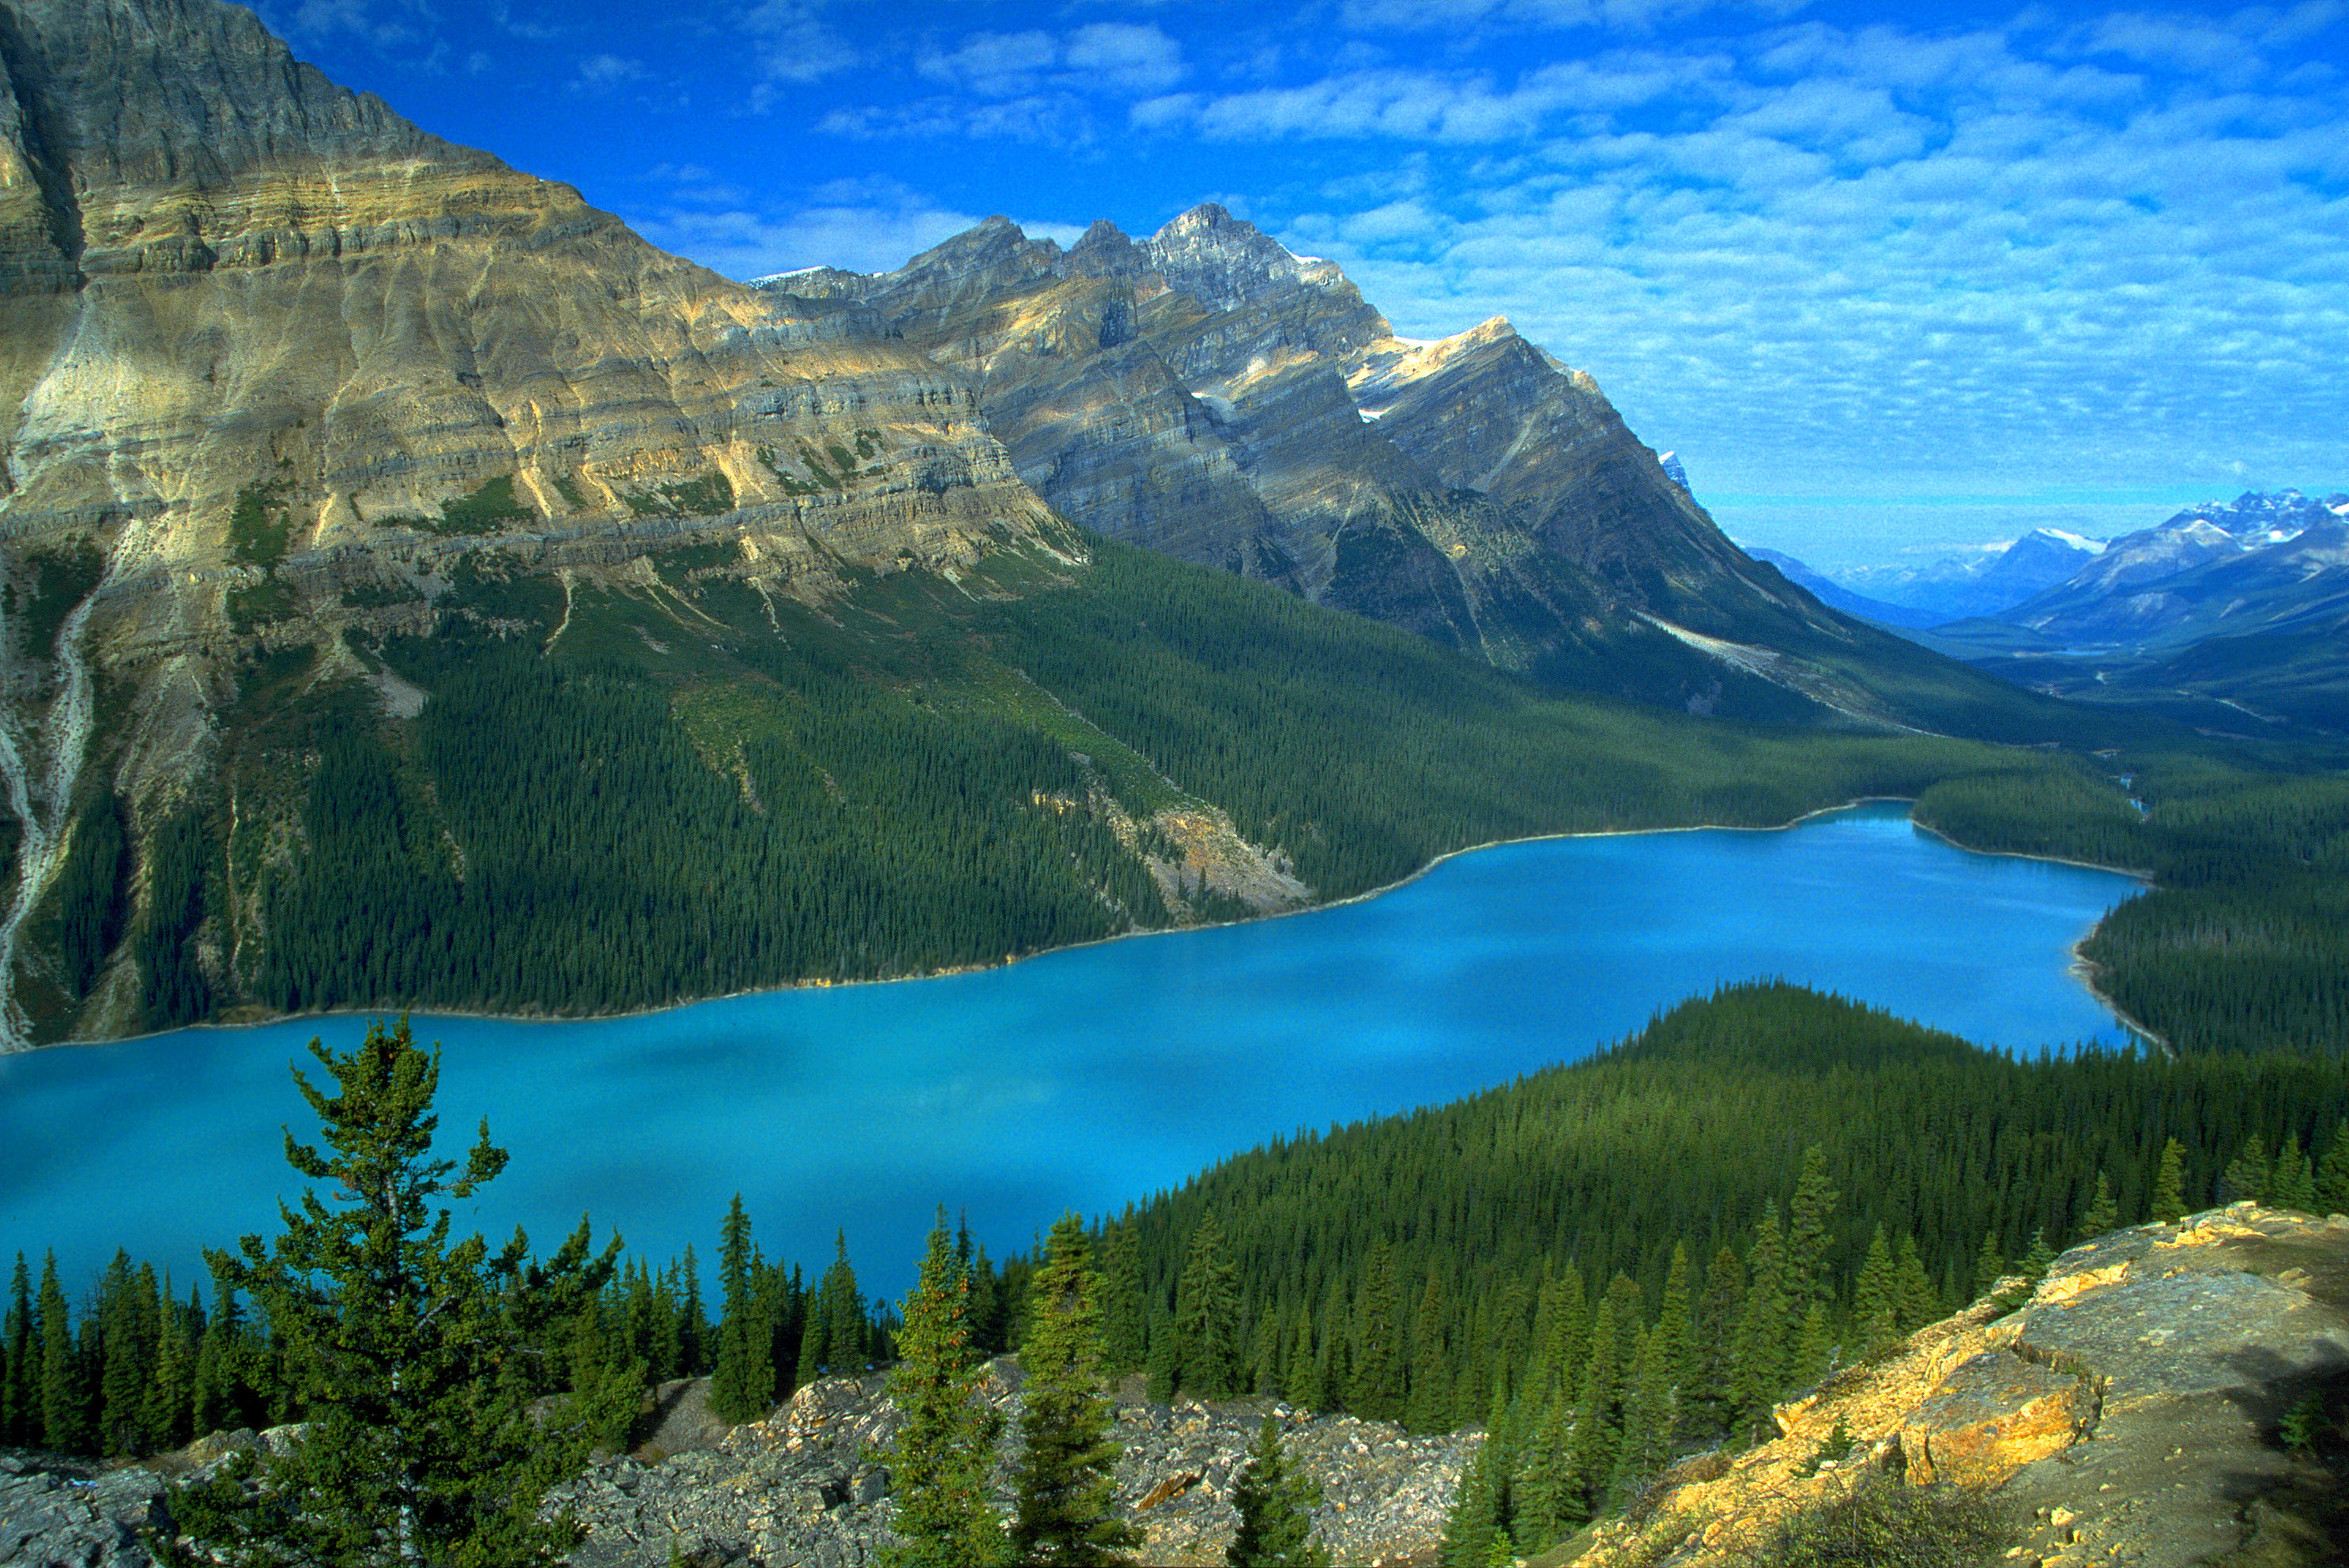 The Top Ten Most Beautiful Lakes In The World